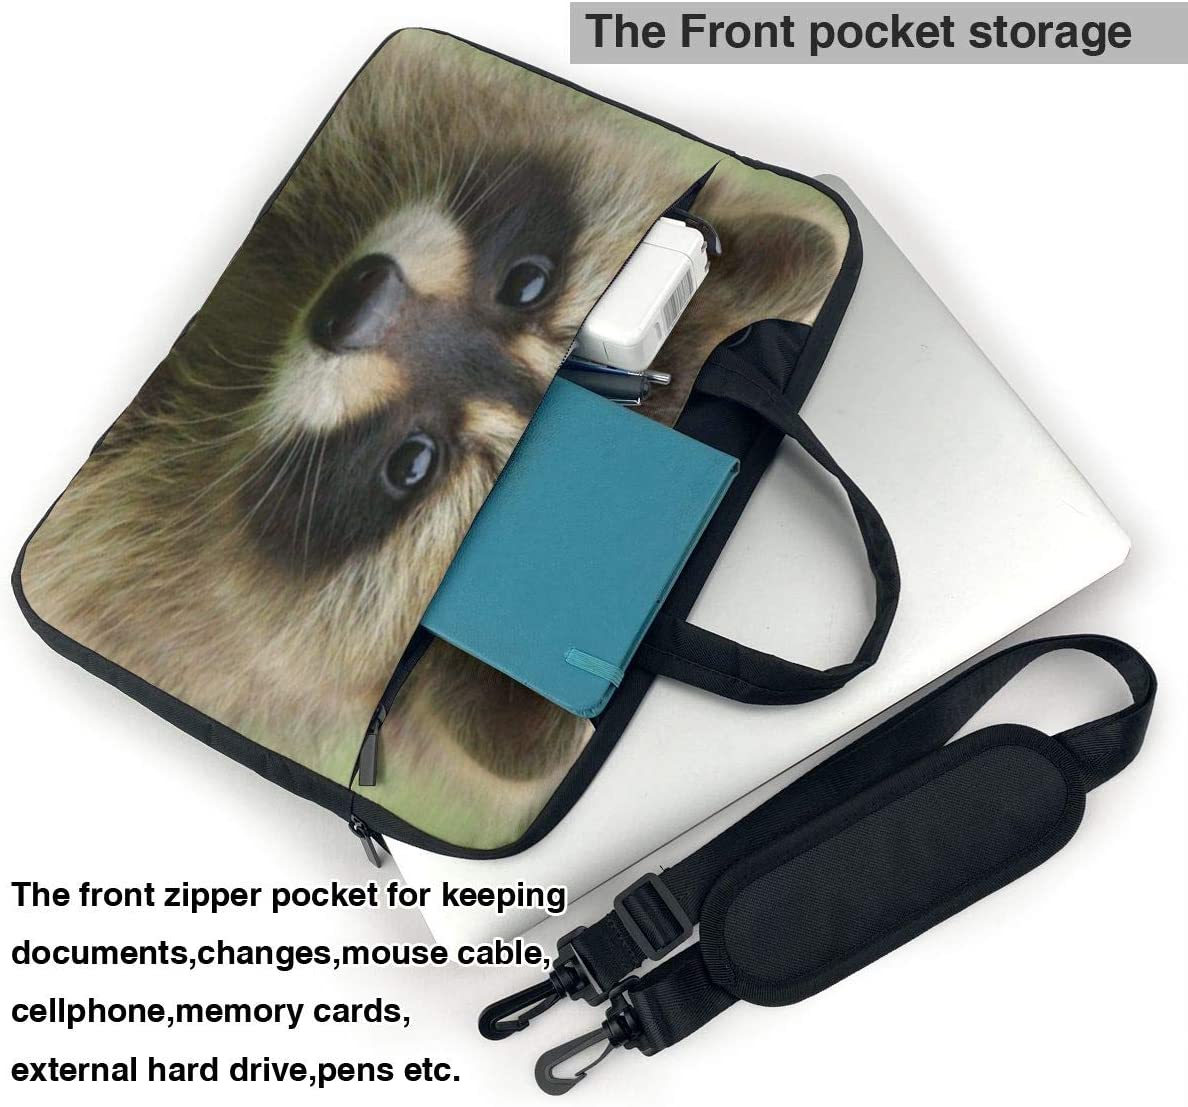 Cute Raccoon Functional Laptop Sleeve Case with Strap Fits 13-15.6in Notebook for Office NEPower Laptop Tote Bag